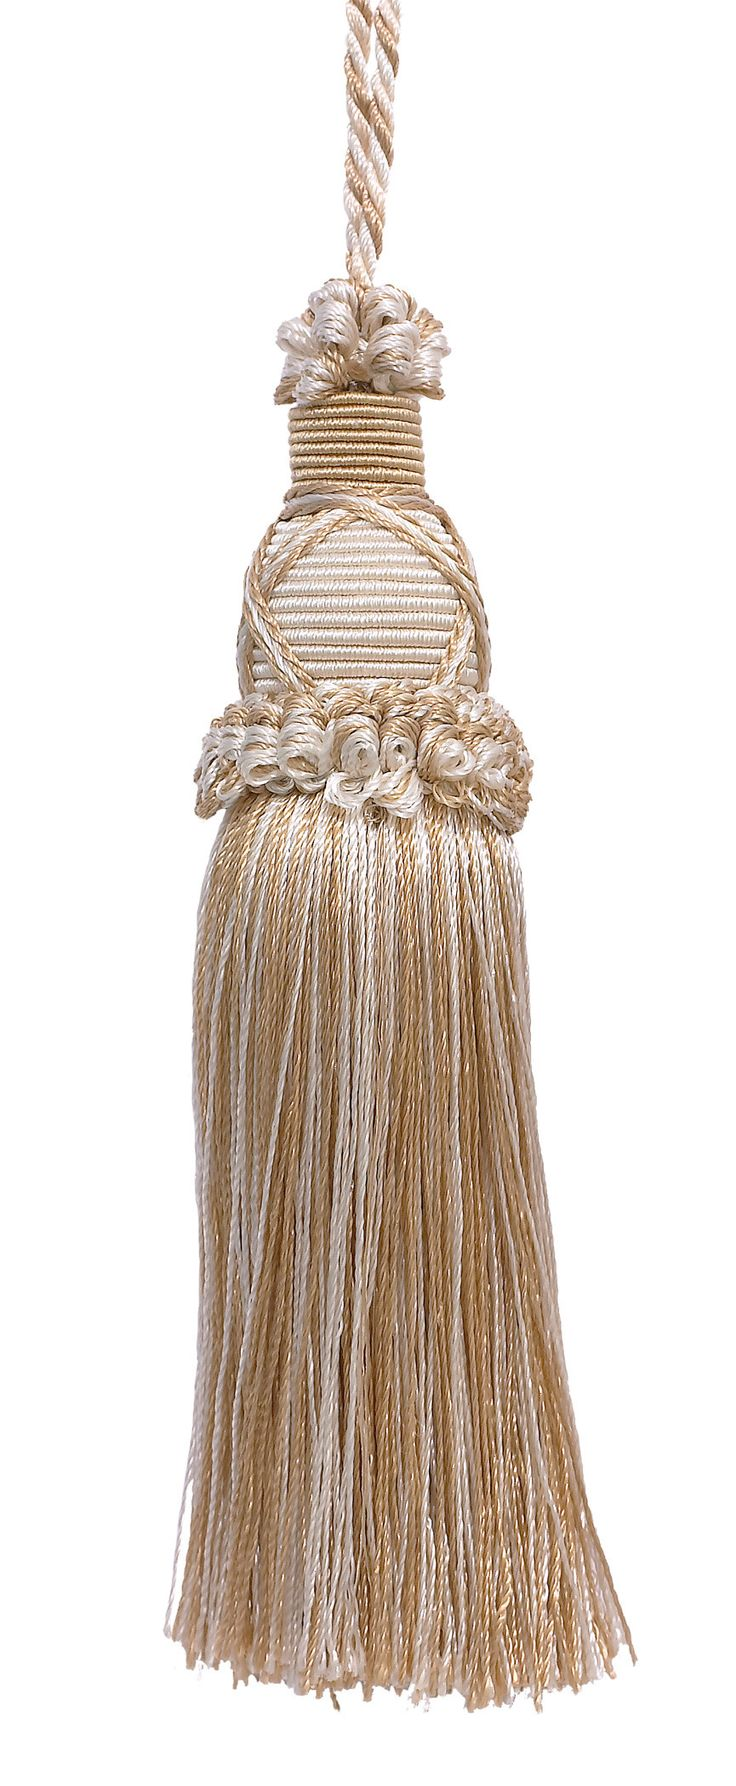 Decorative 5.5 Inch Key Tassel, Ivory, Light Beige Imperial II Collection Style# KTIC Color: WHITE SANDS - 4001